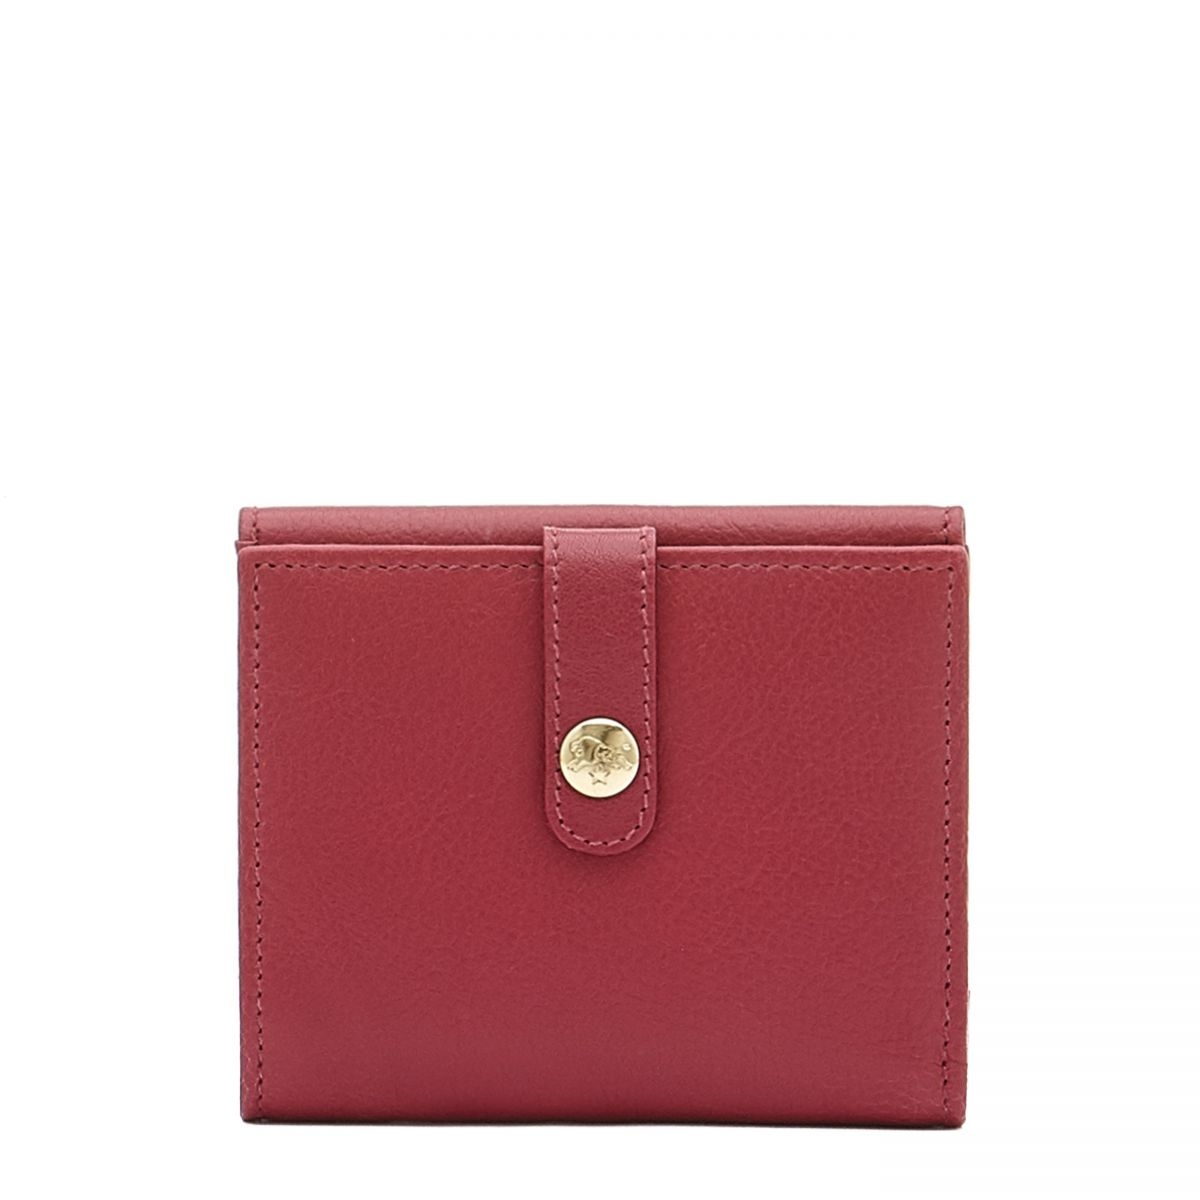 Women's Wallet  in Cowhide Leather SMW044 color Sumac   Details